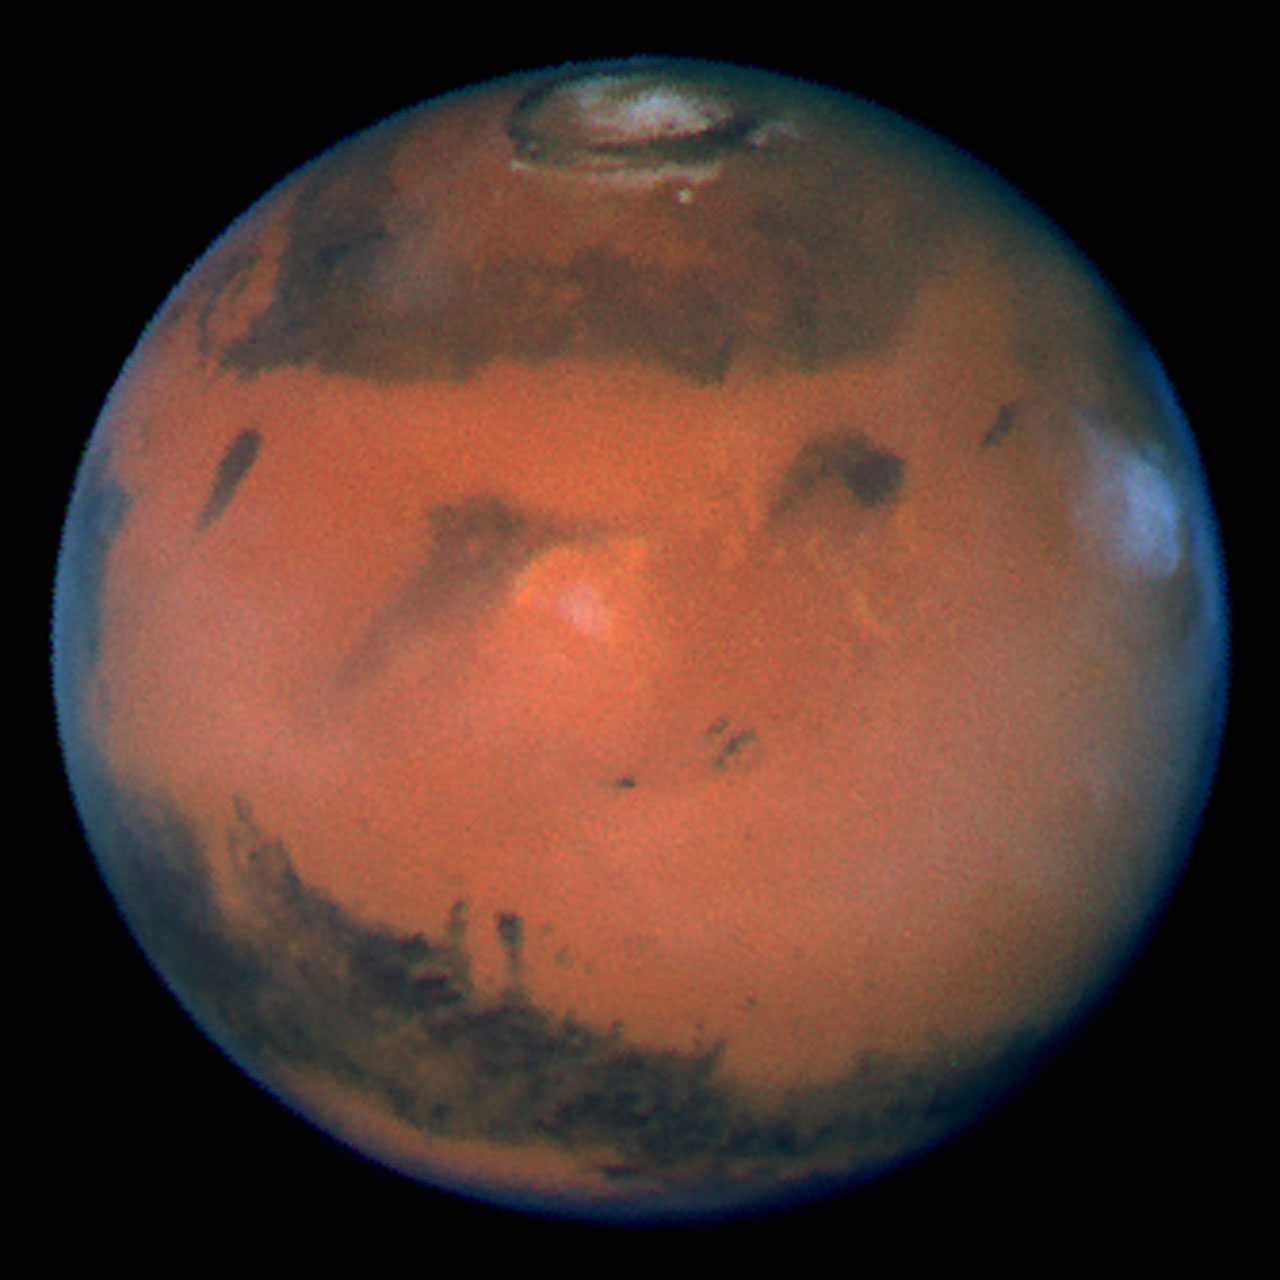 hubble images of mars - photo #6